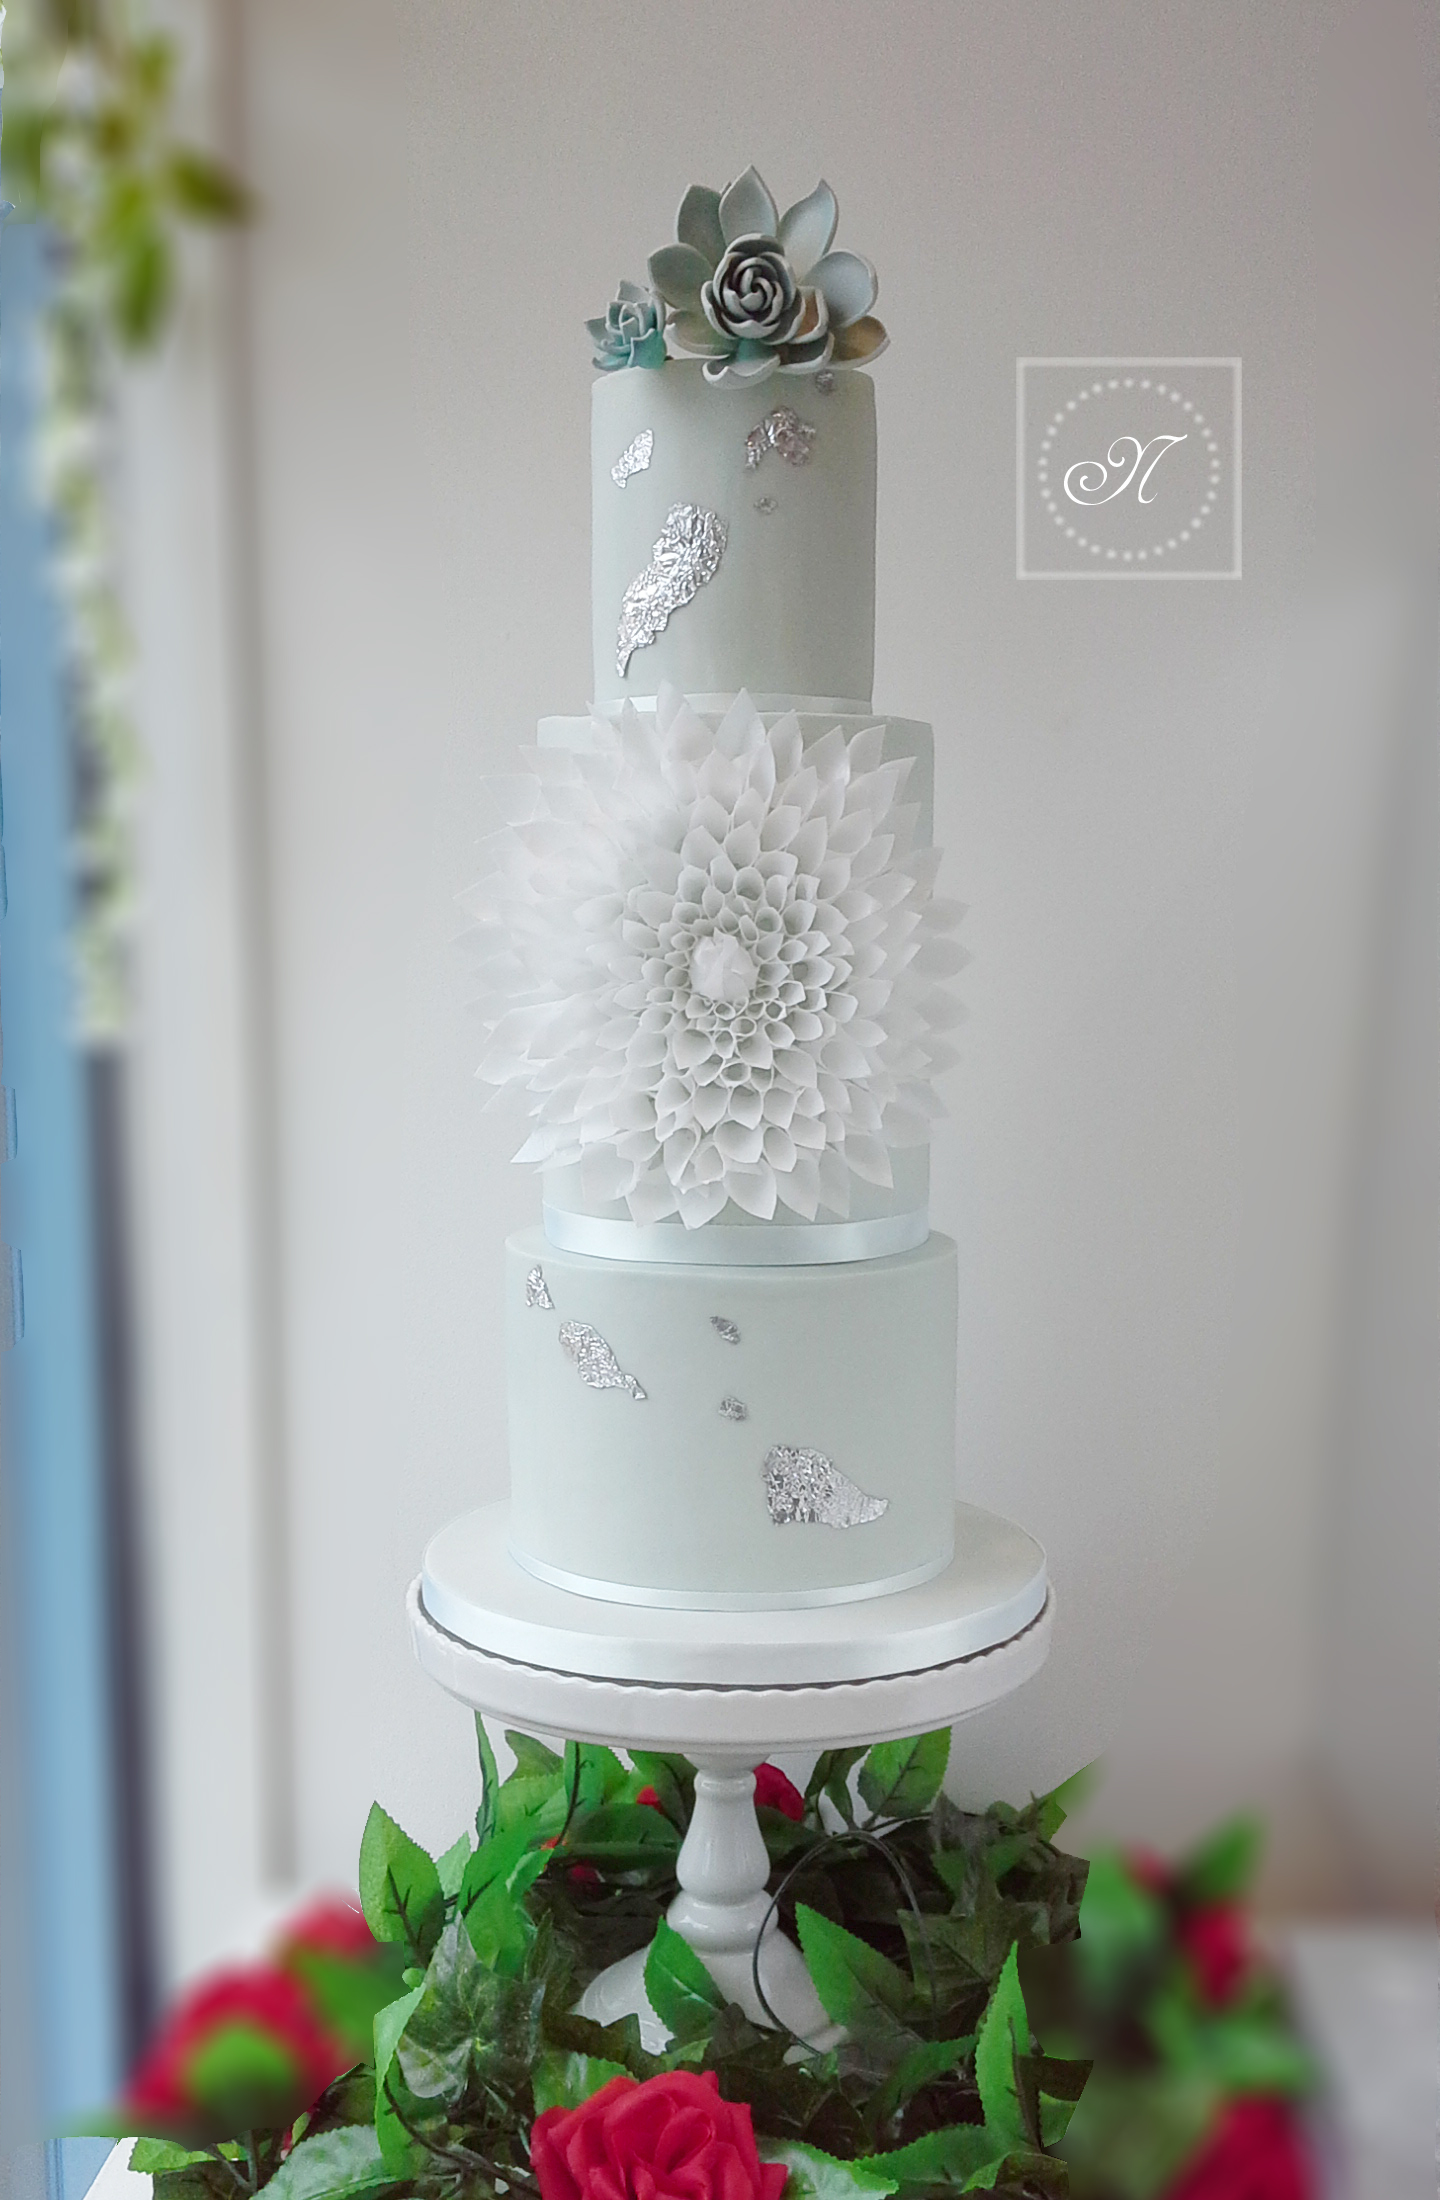 All pastel green fondant wedding cake with white trim